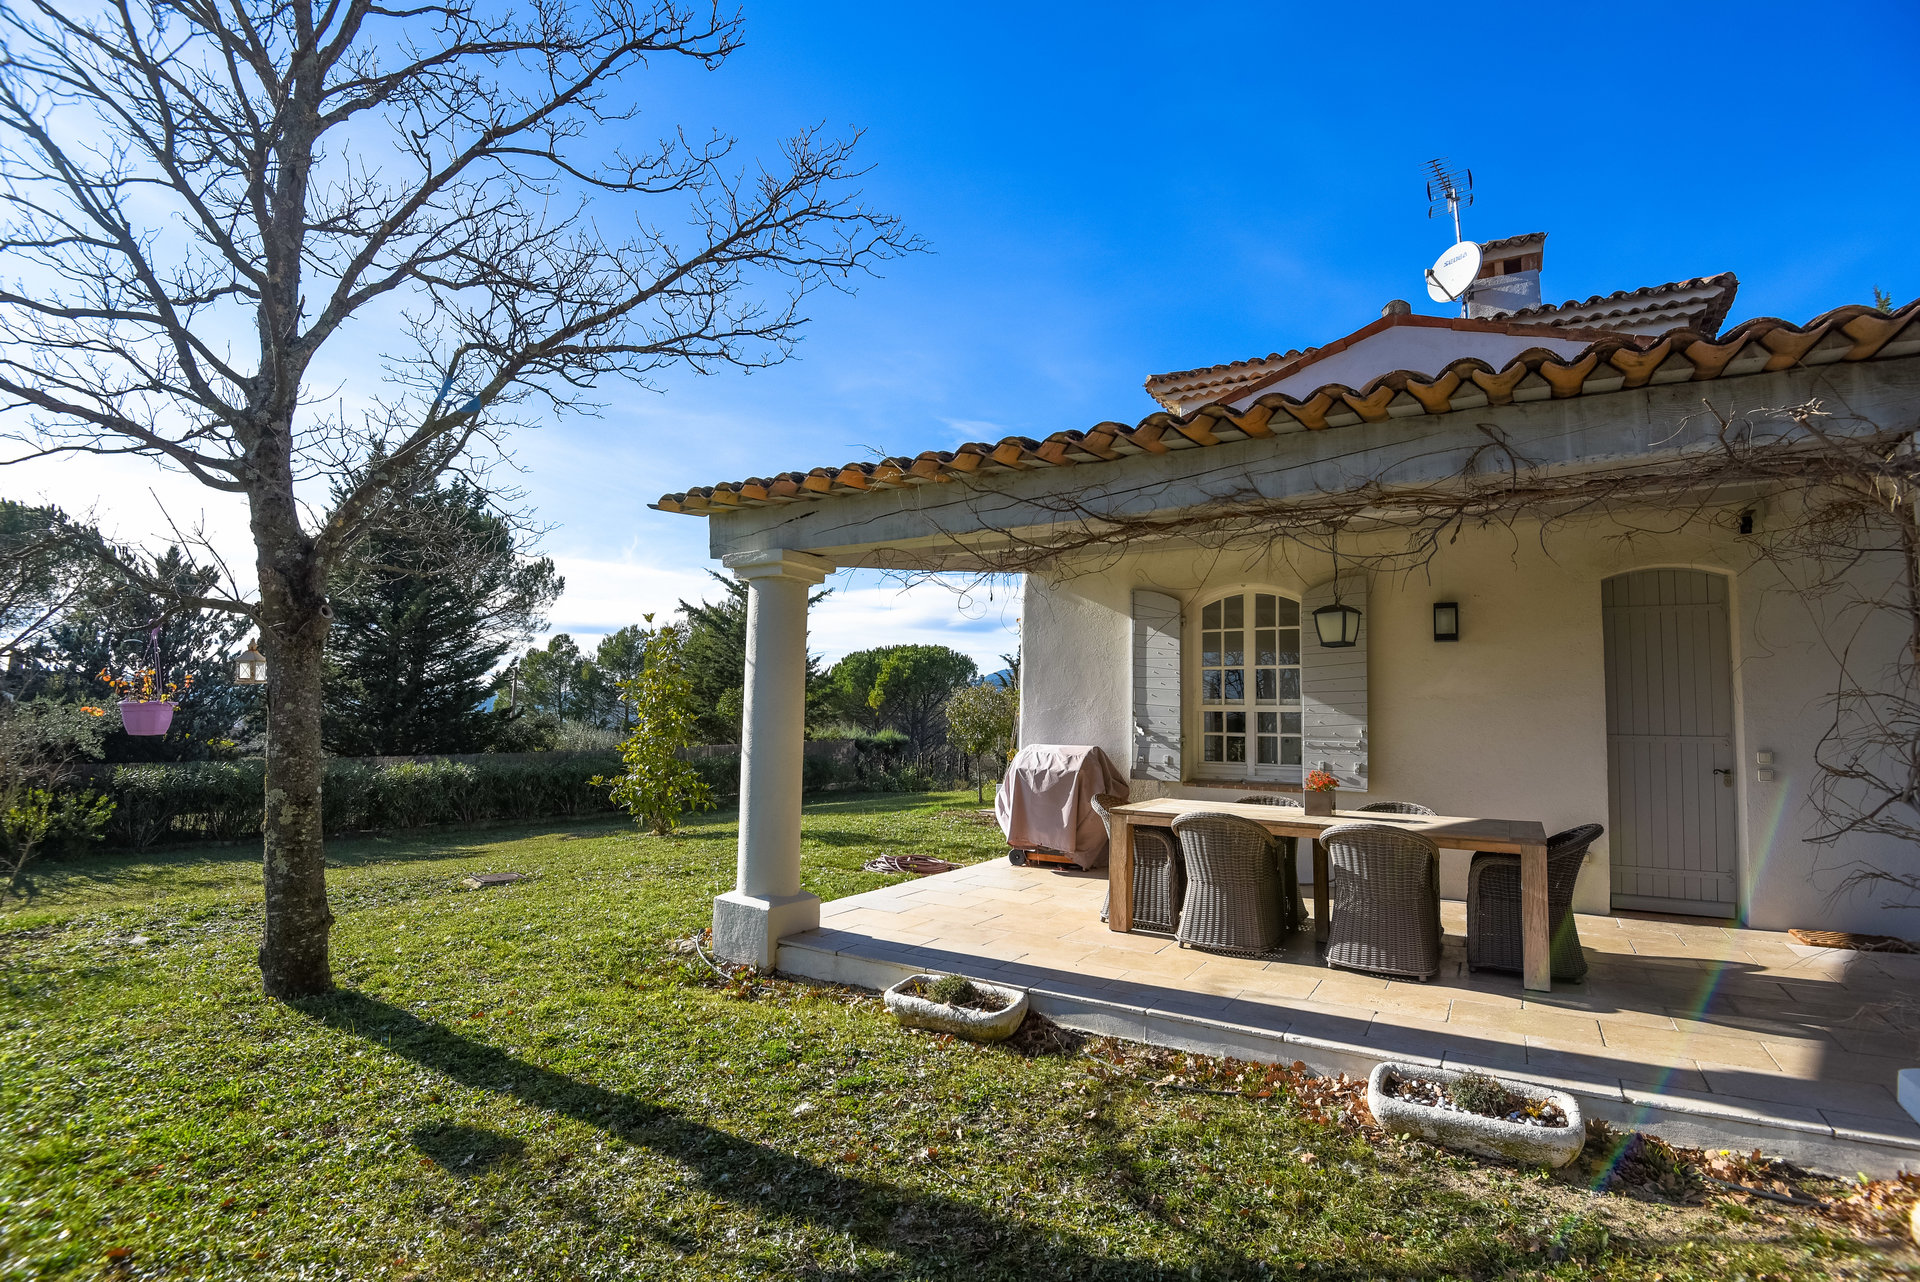 Within walking distance to the village of FAYENCE